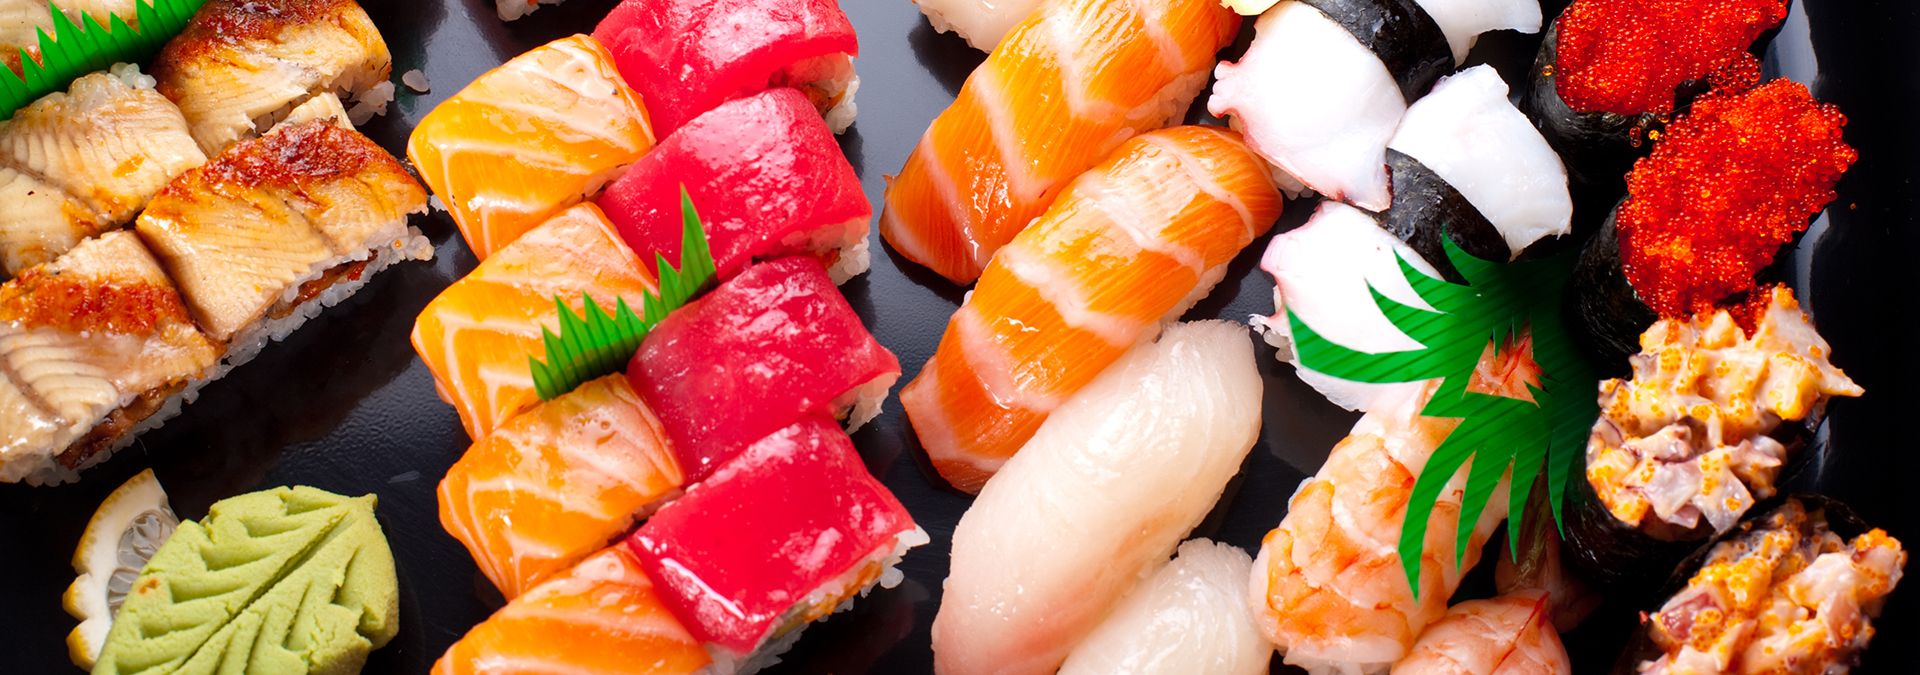 tazaki-foods-header-2